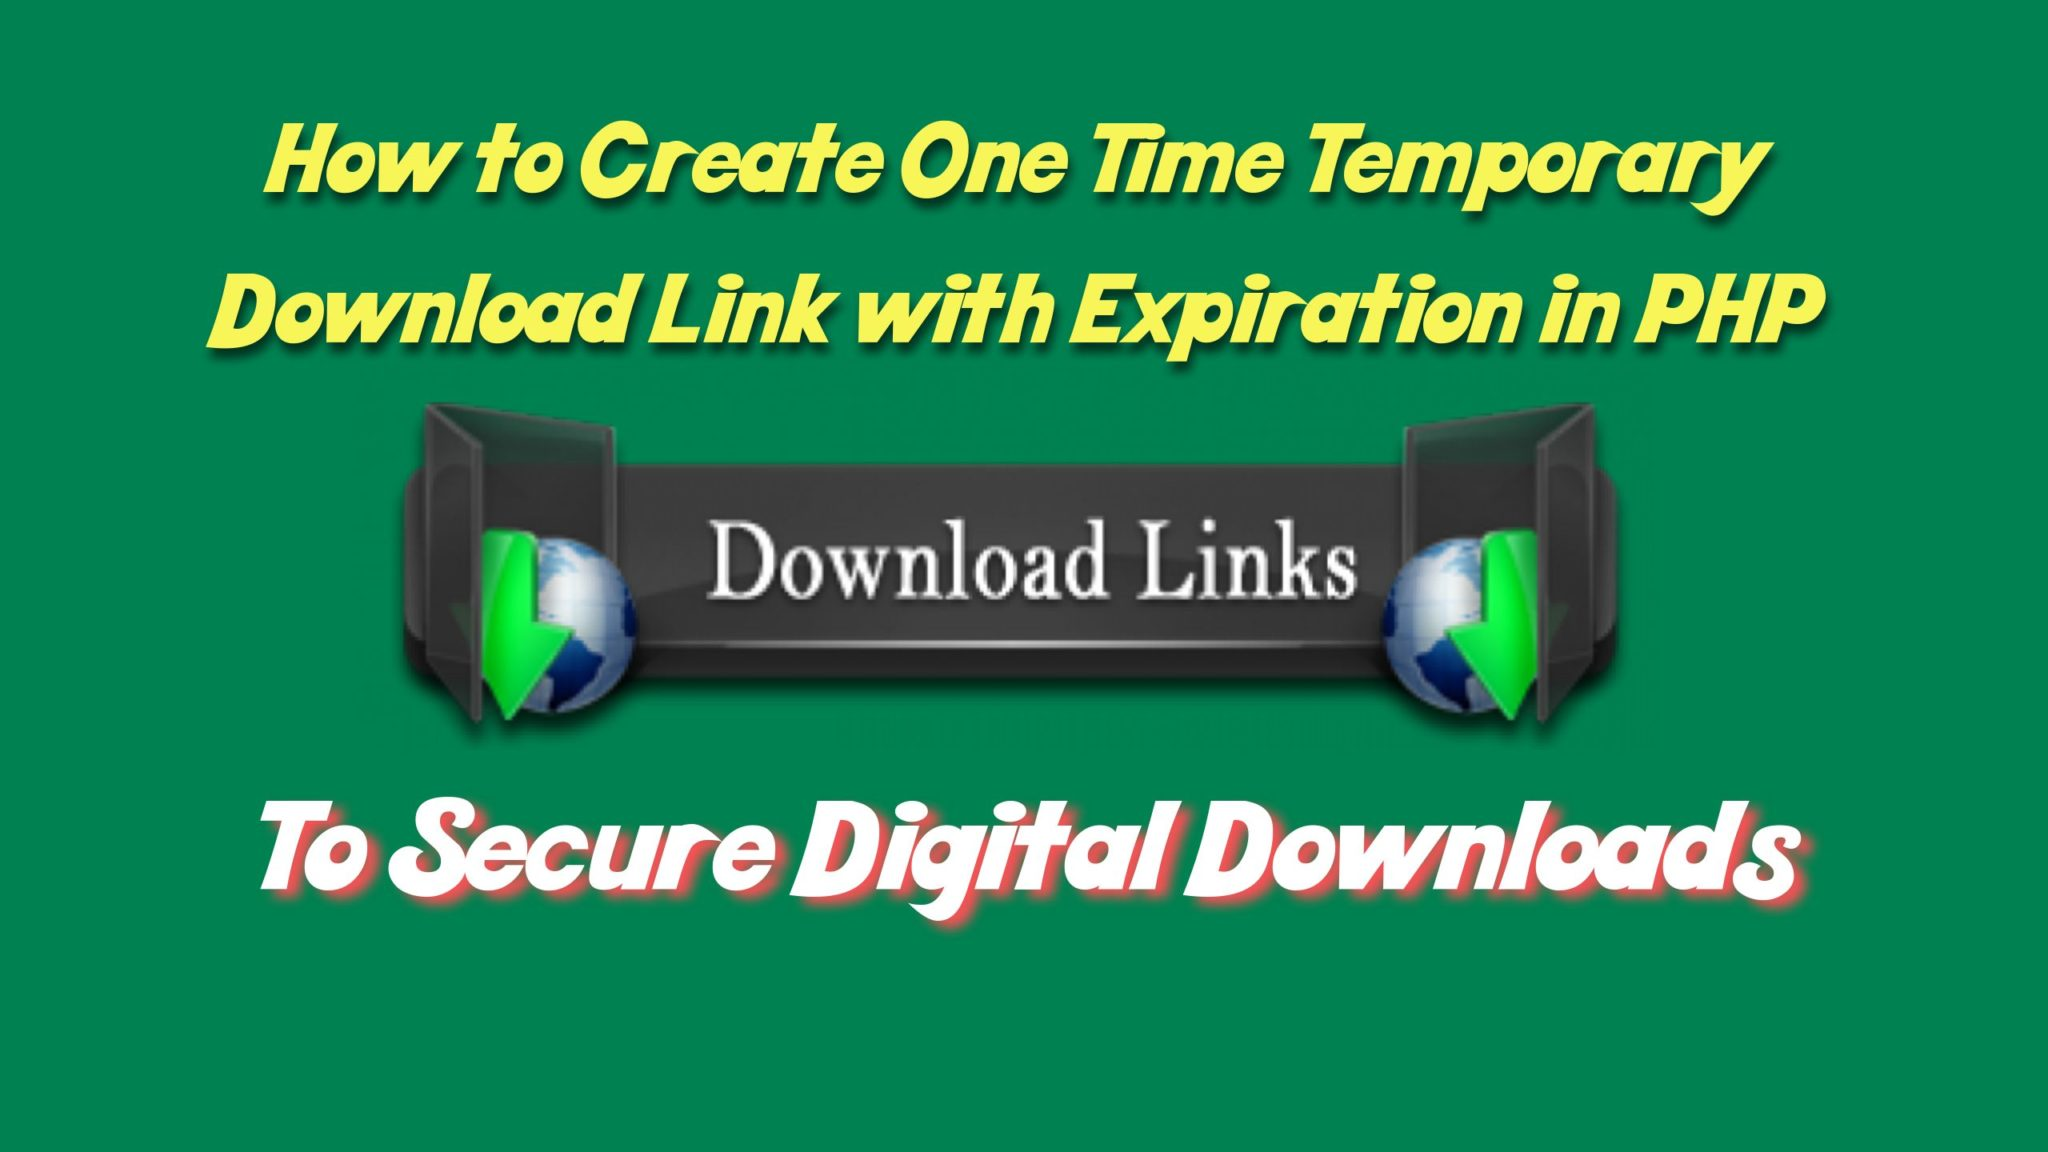 How to Create One Time Temporary Download Link with Expiration in